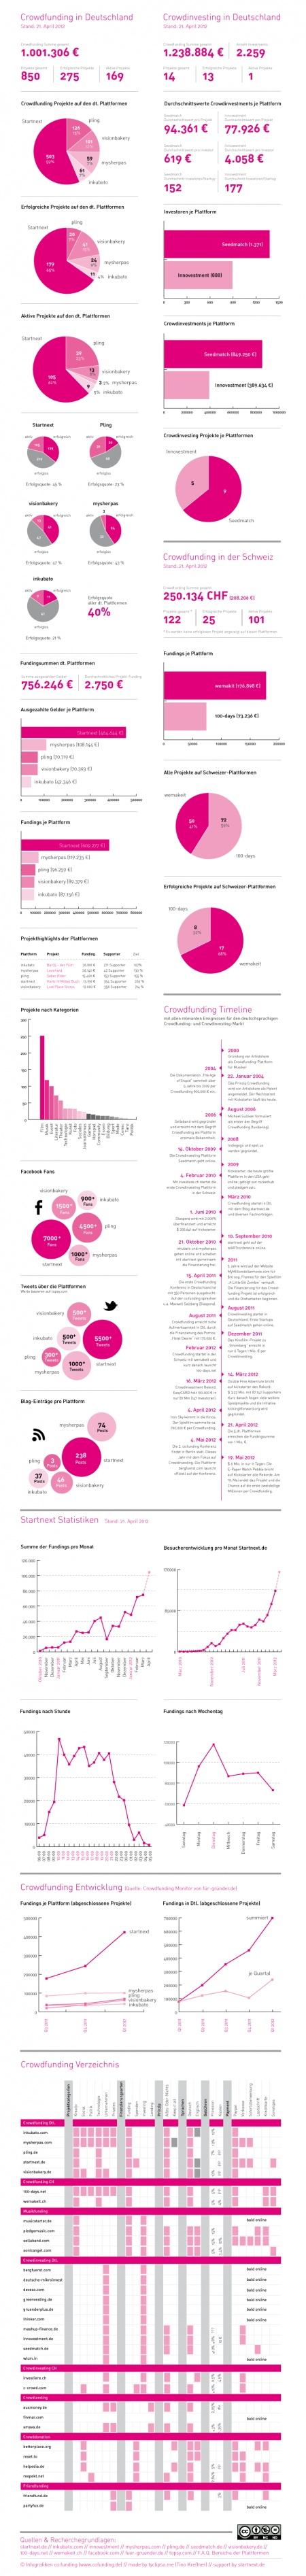 1,5-Jahre-Crowdfunding-in-DeutschlandJahre Crowdfunding, Infographic Crowdfunding, Social Media, Social Web, Media Business, Crowd Wisdom, Crowdfunding Infographic, Social Economy, Crowdsourcing 101